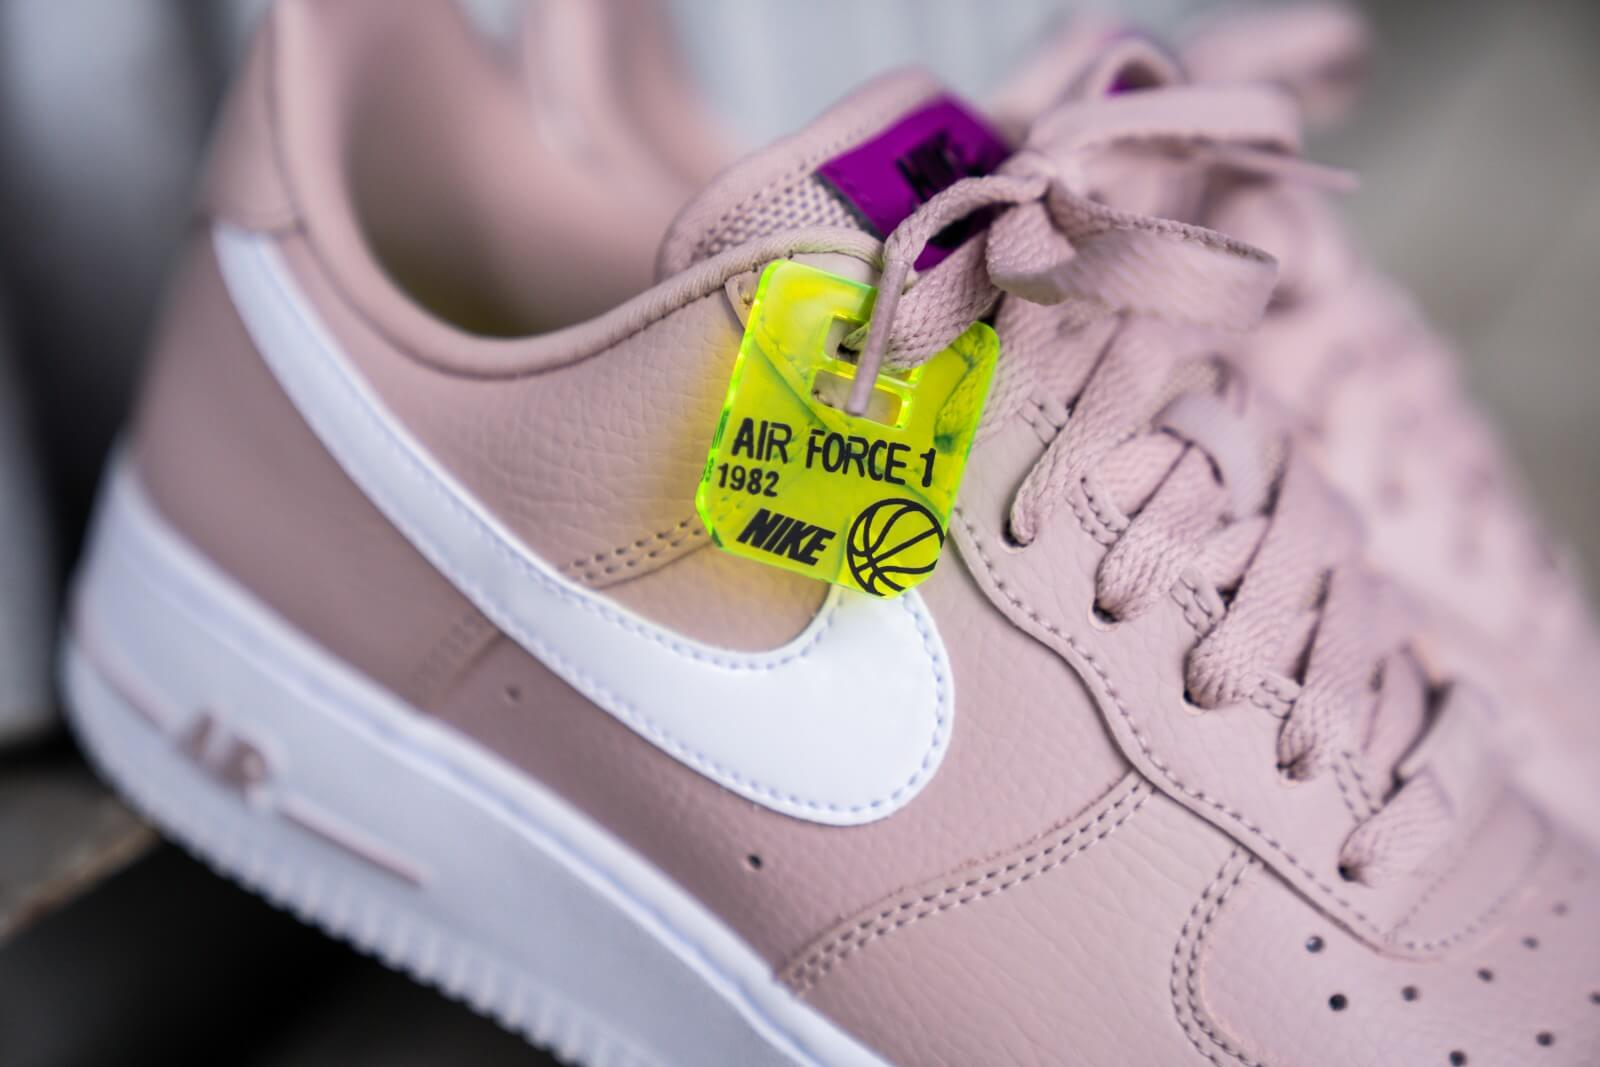 air force 1 femme maive